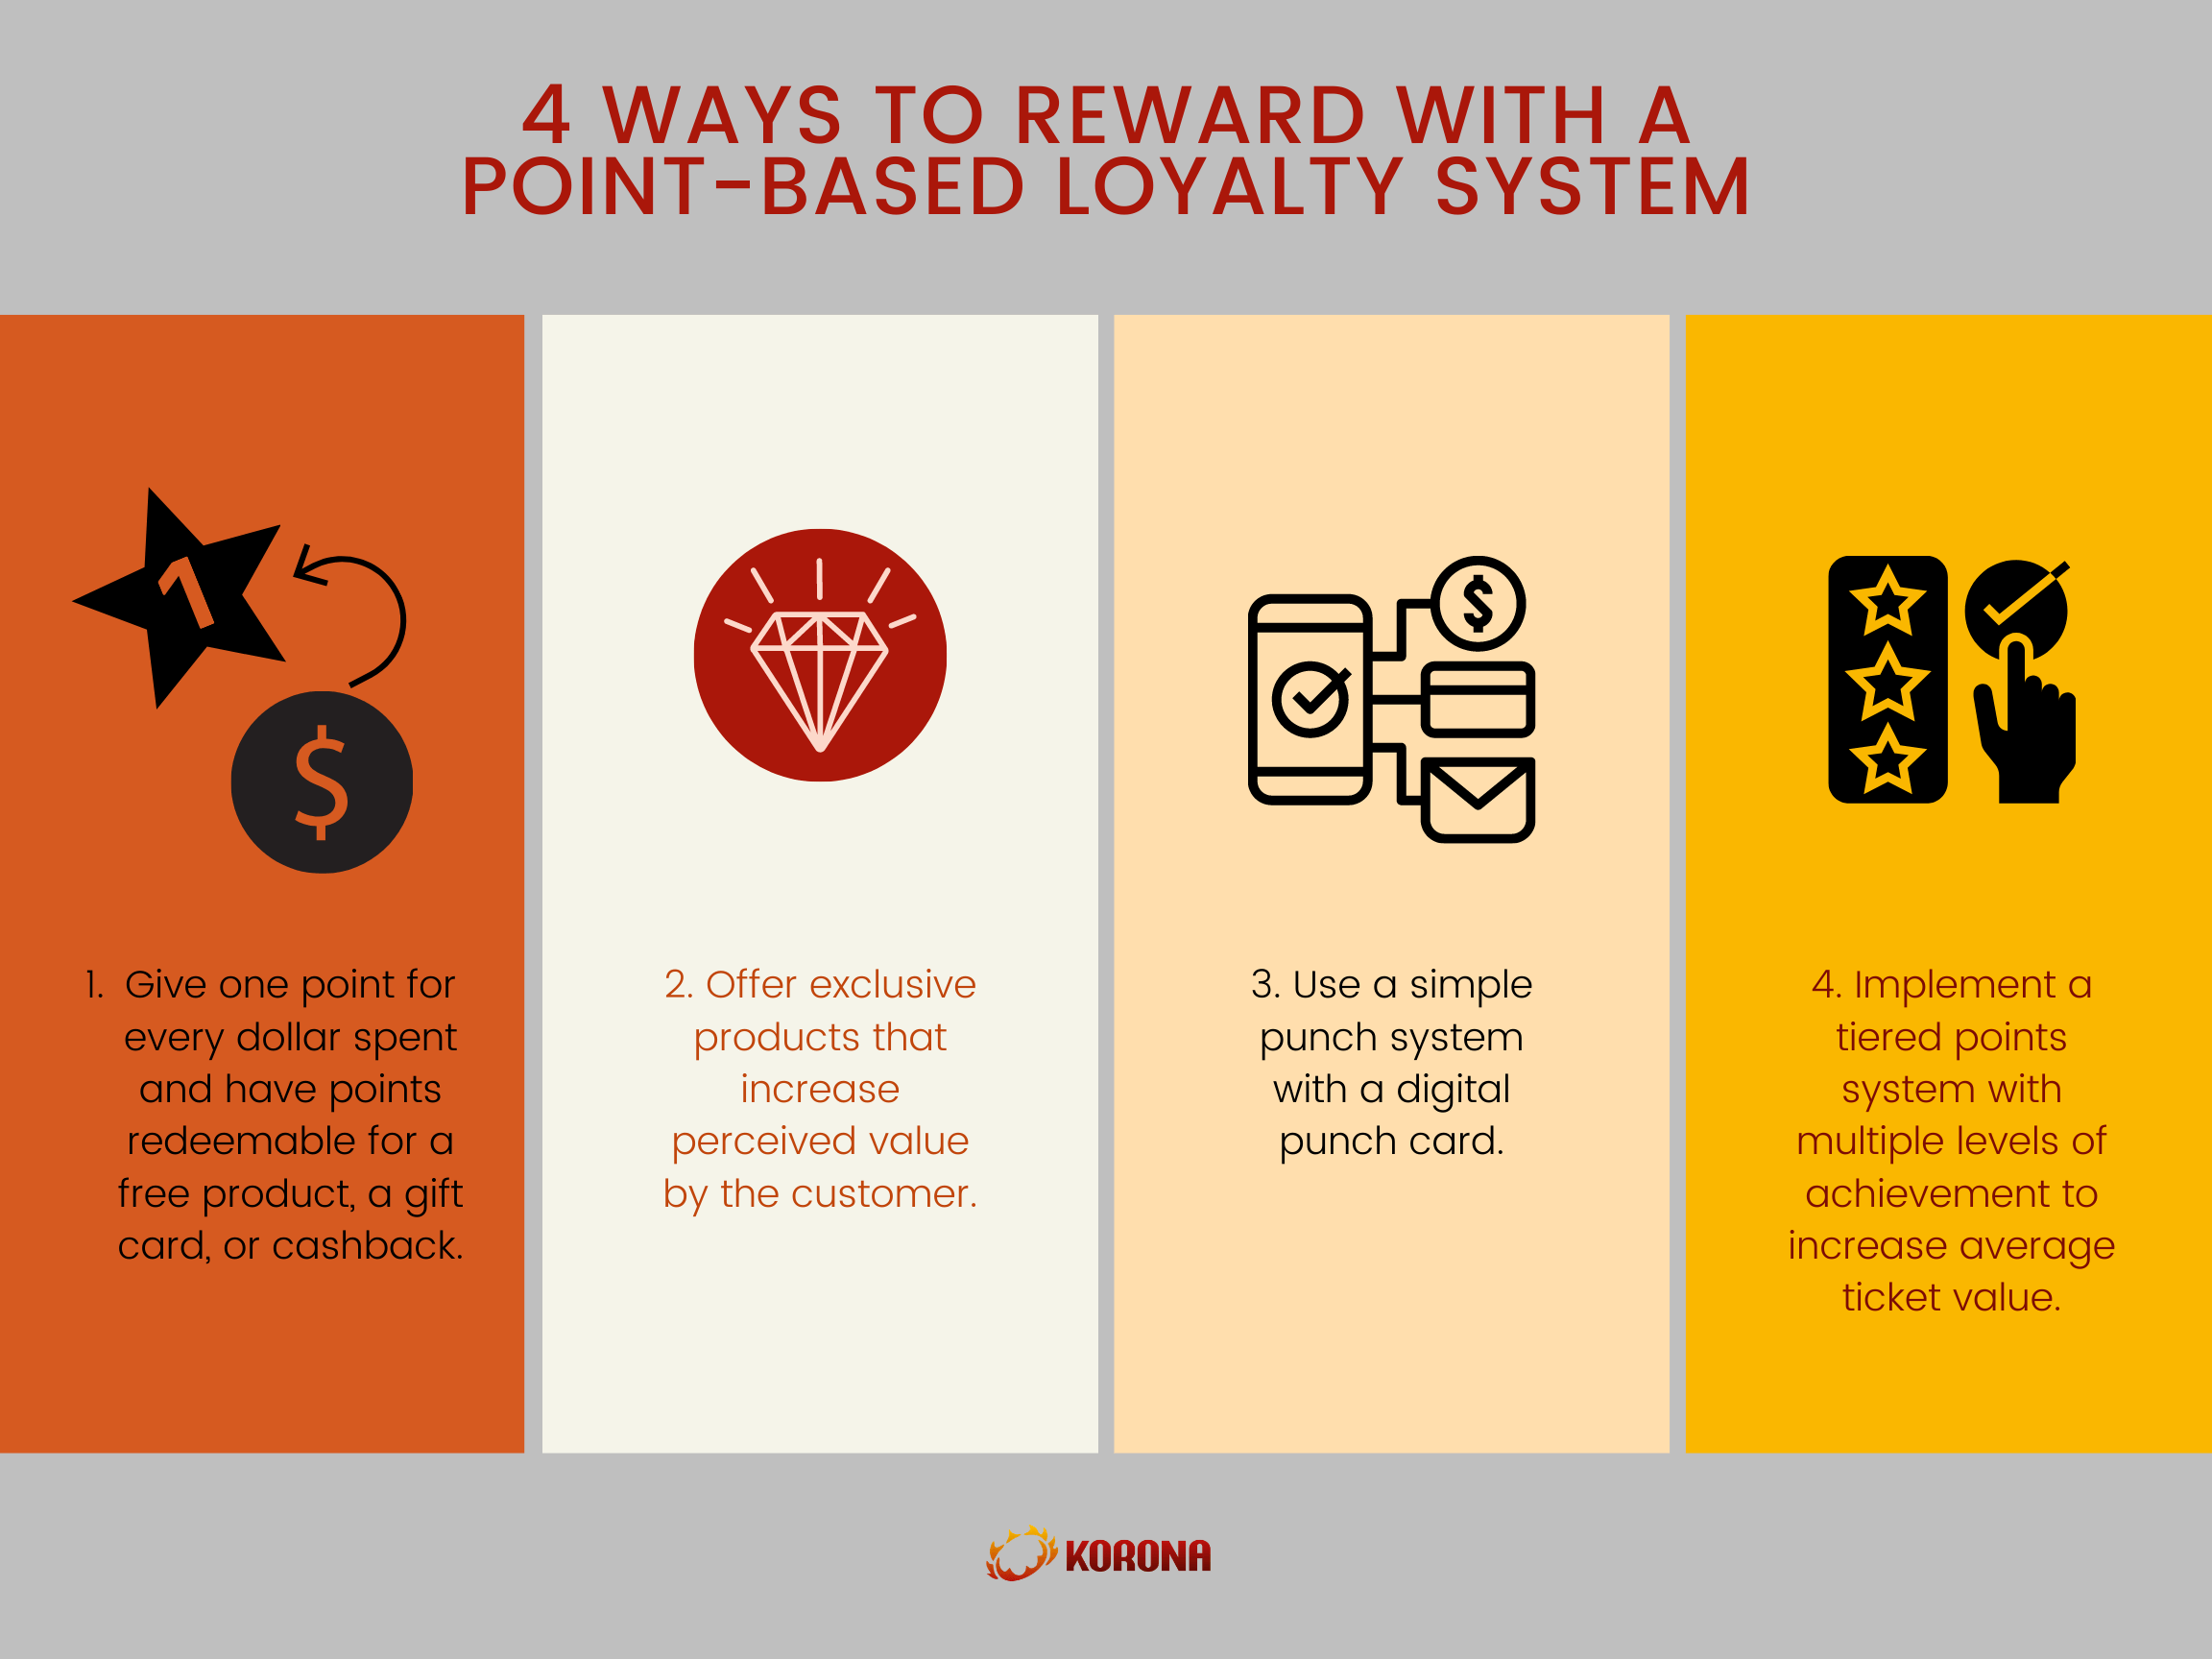 infographic to show 4 ways to reward with a point-based loyalty system with icons representing each way